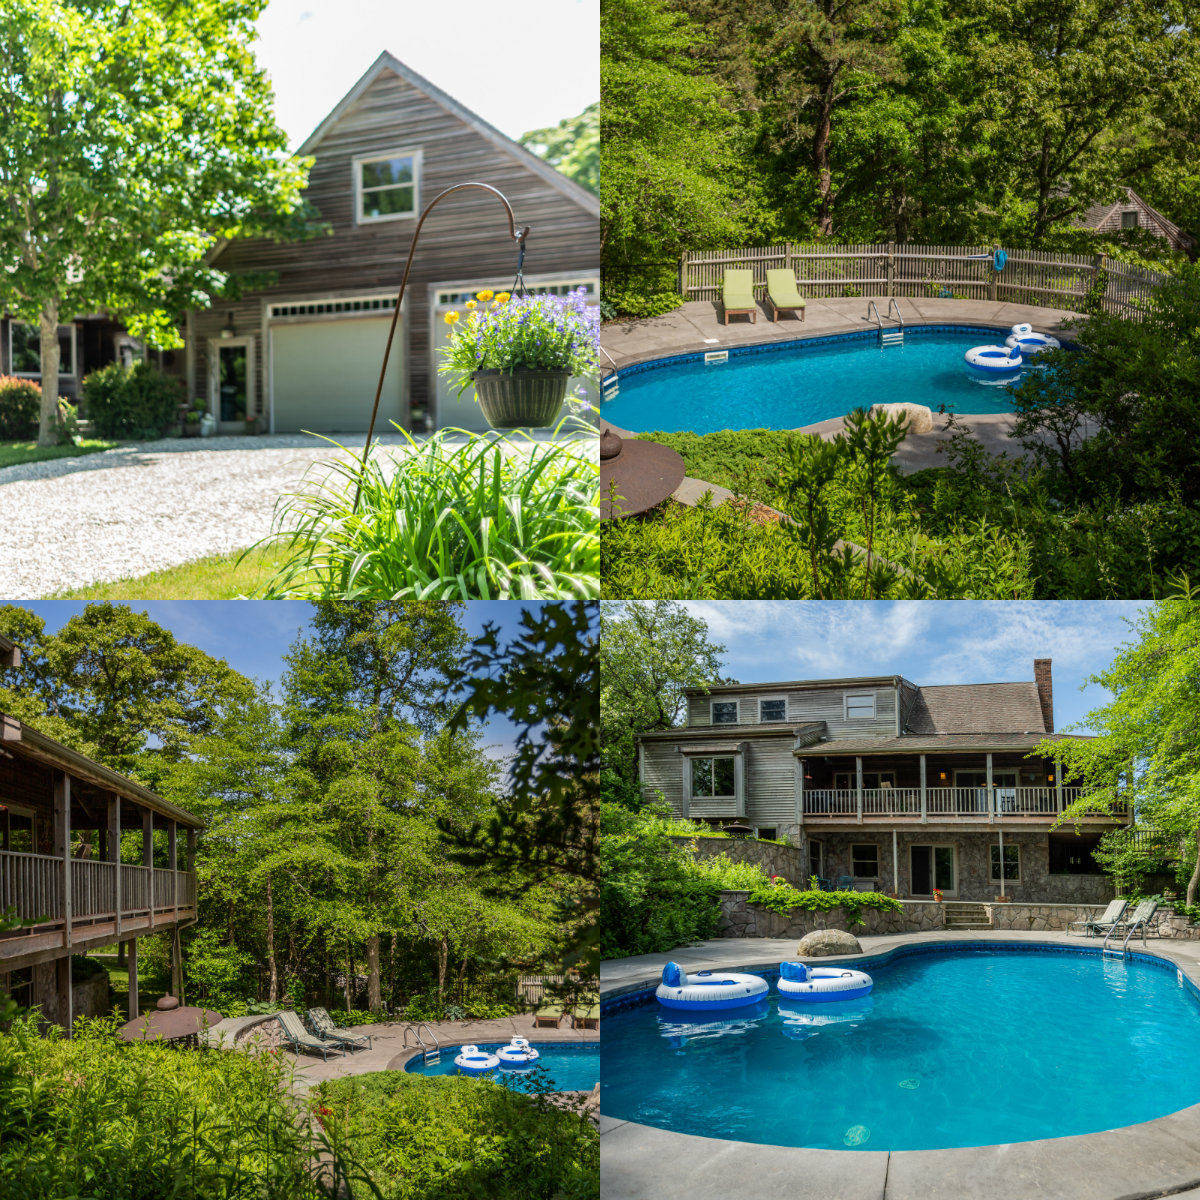 Images of pool at 972 Stony Brook in Brewster Cape Cod MA